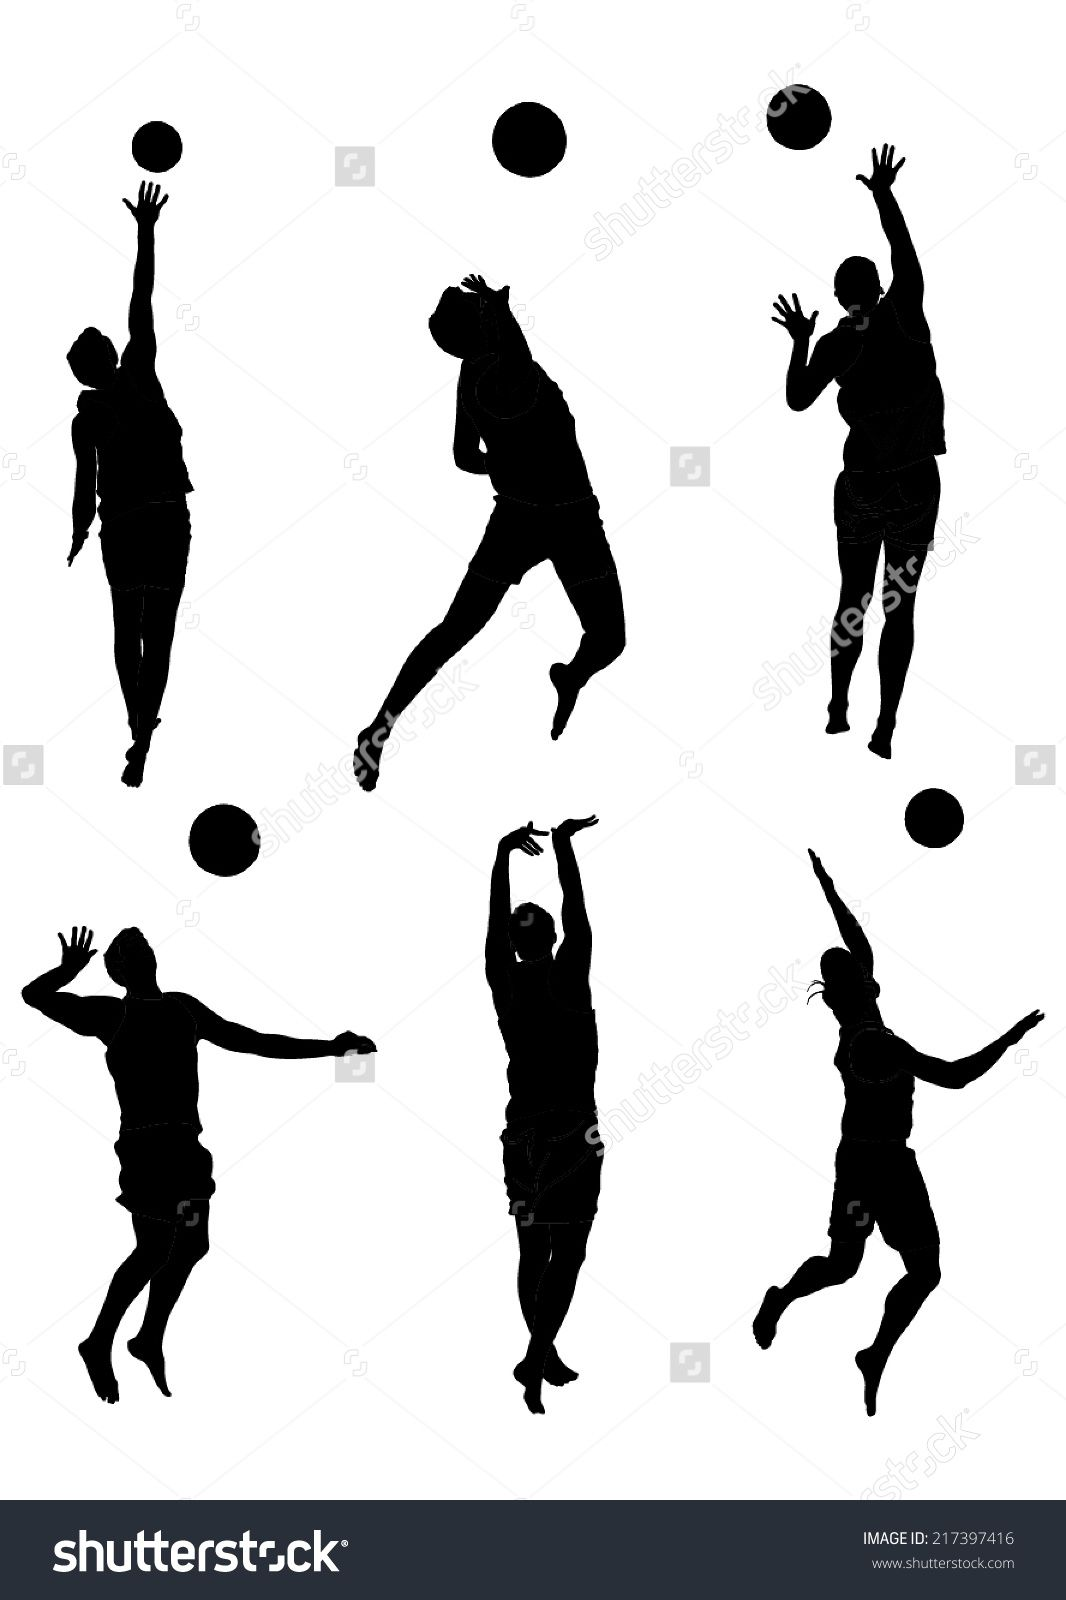 Beach Volleyball Players Vector Silhouette Isolated On White Background Beach Volleyball Vector S Beach Volleyball Volleyball Players Silhouette Illustration